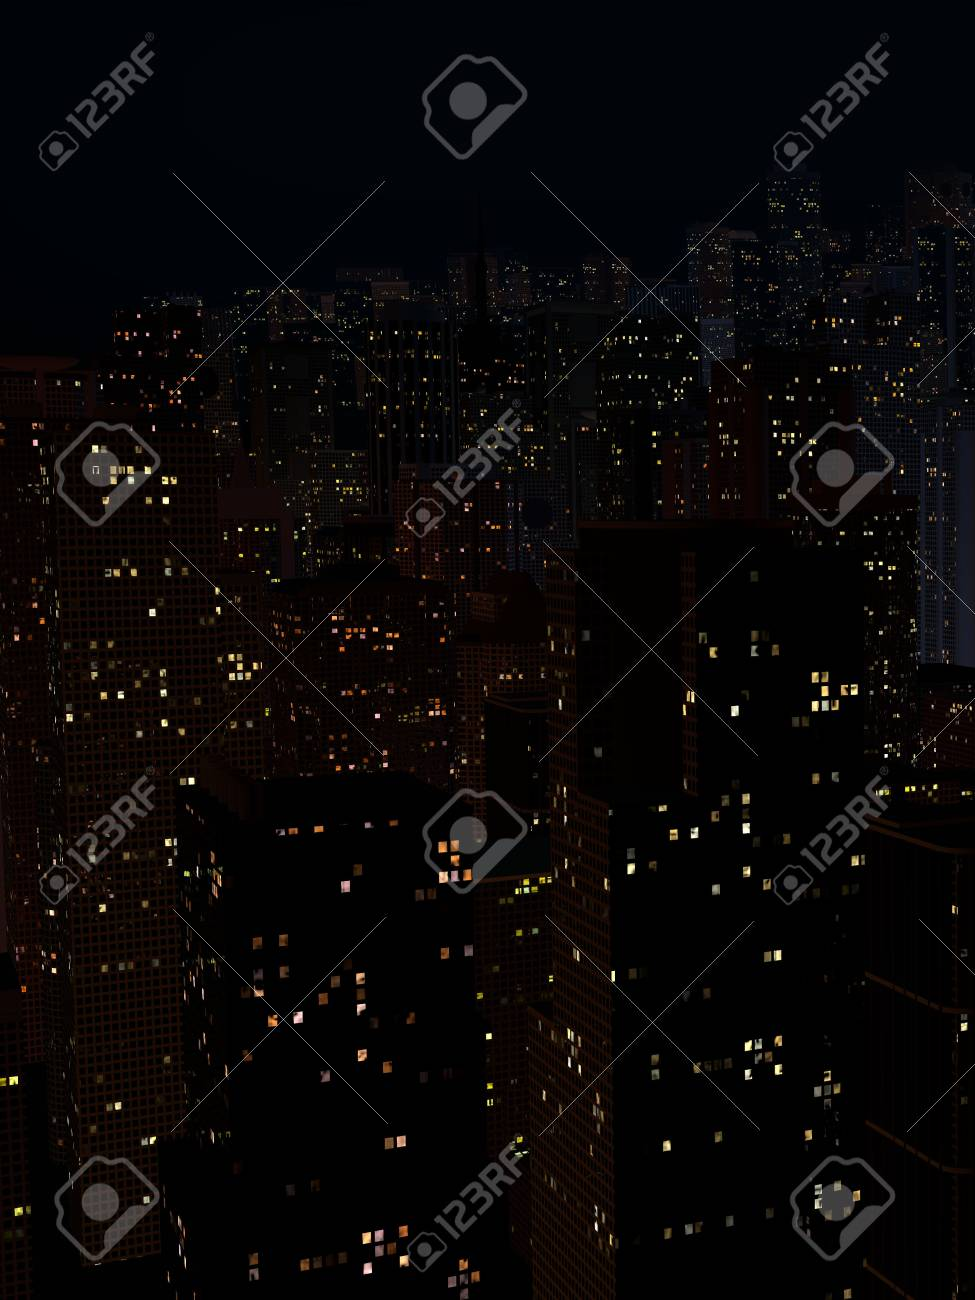 night landscape of a city with tall houses - 96970775